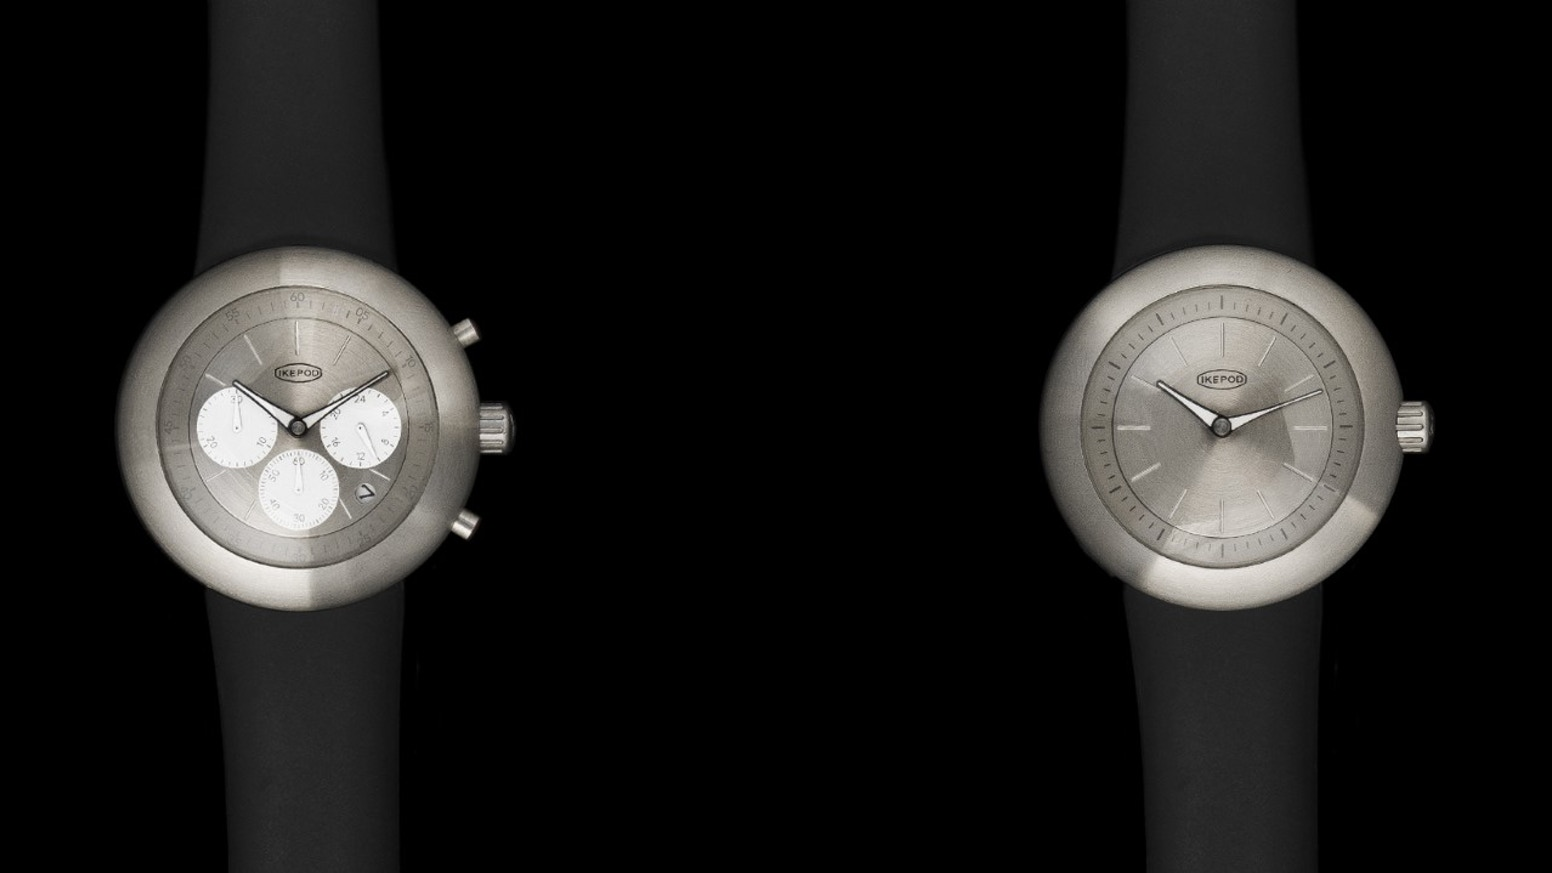 The icon of minimalist  watch design is back. Original Ikepod design, same quality, new prices. The campaign is already successfully funded but it is still possible to pre-order by clicking on the button below.